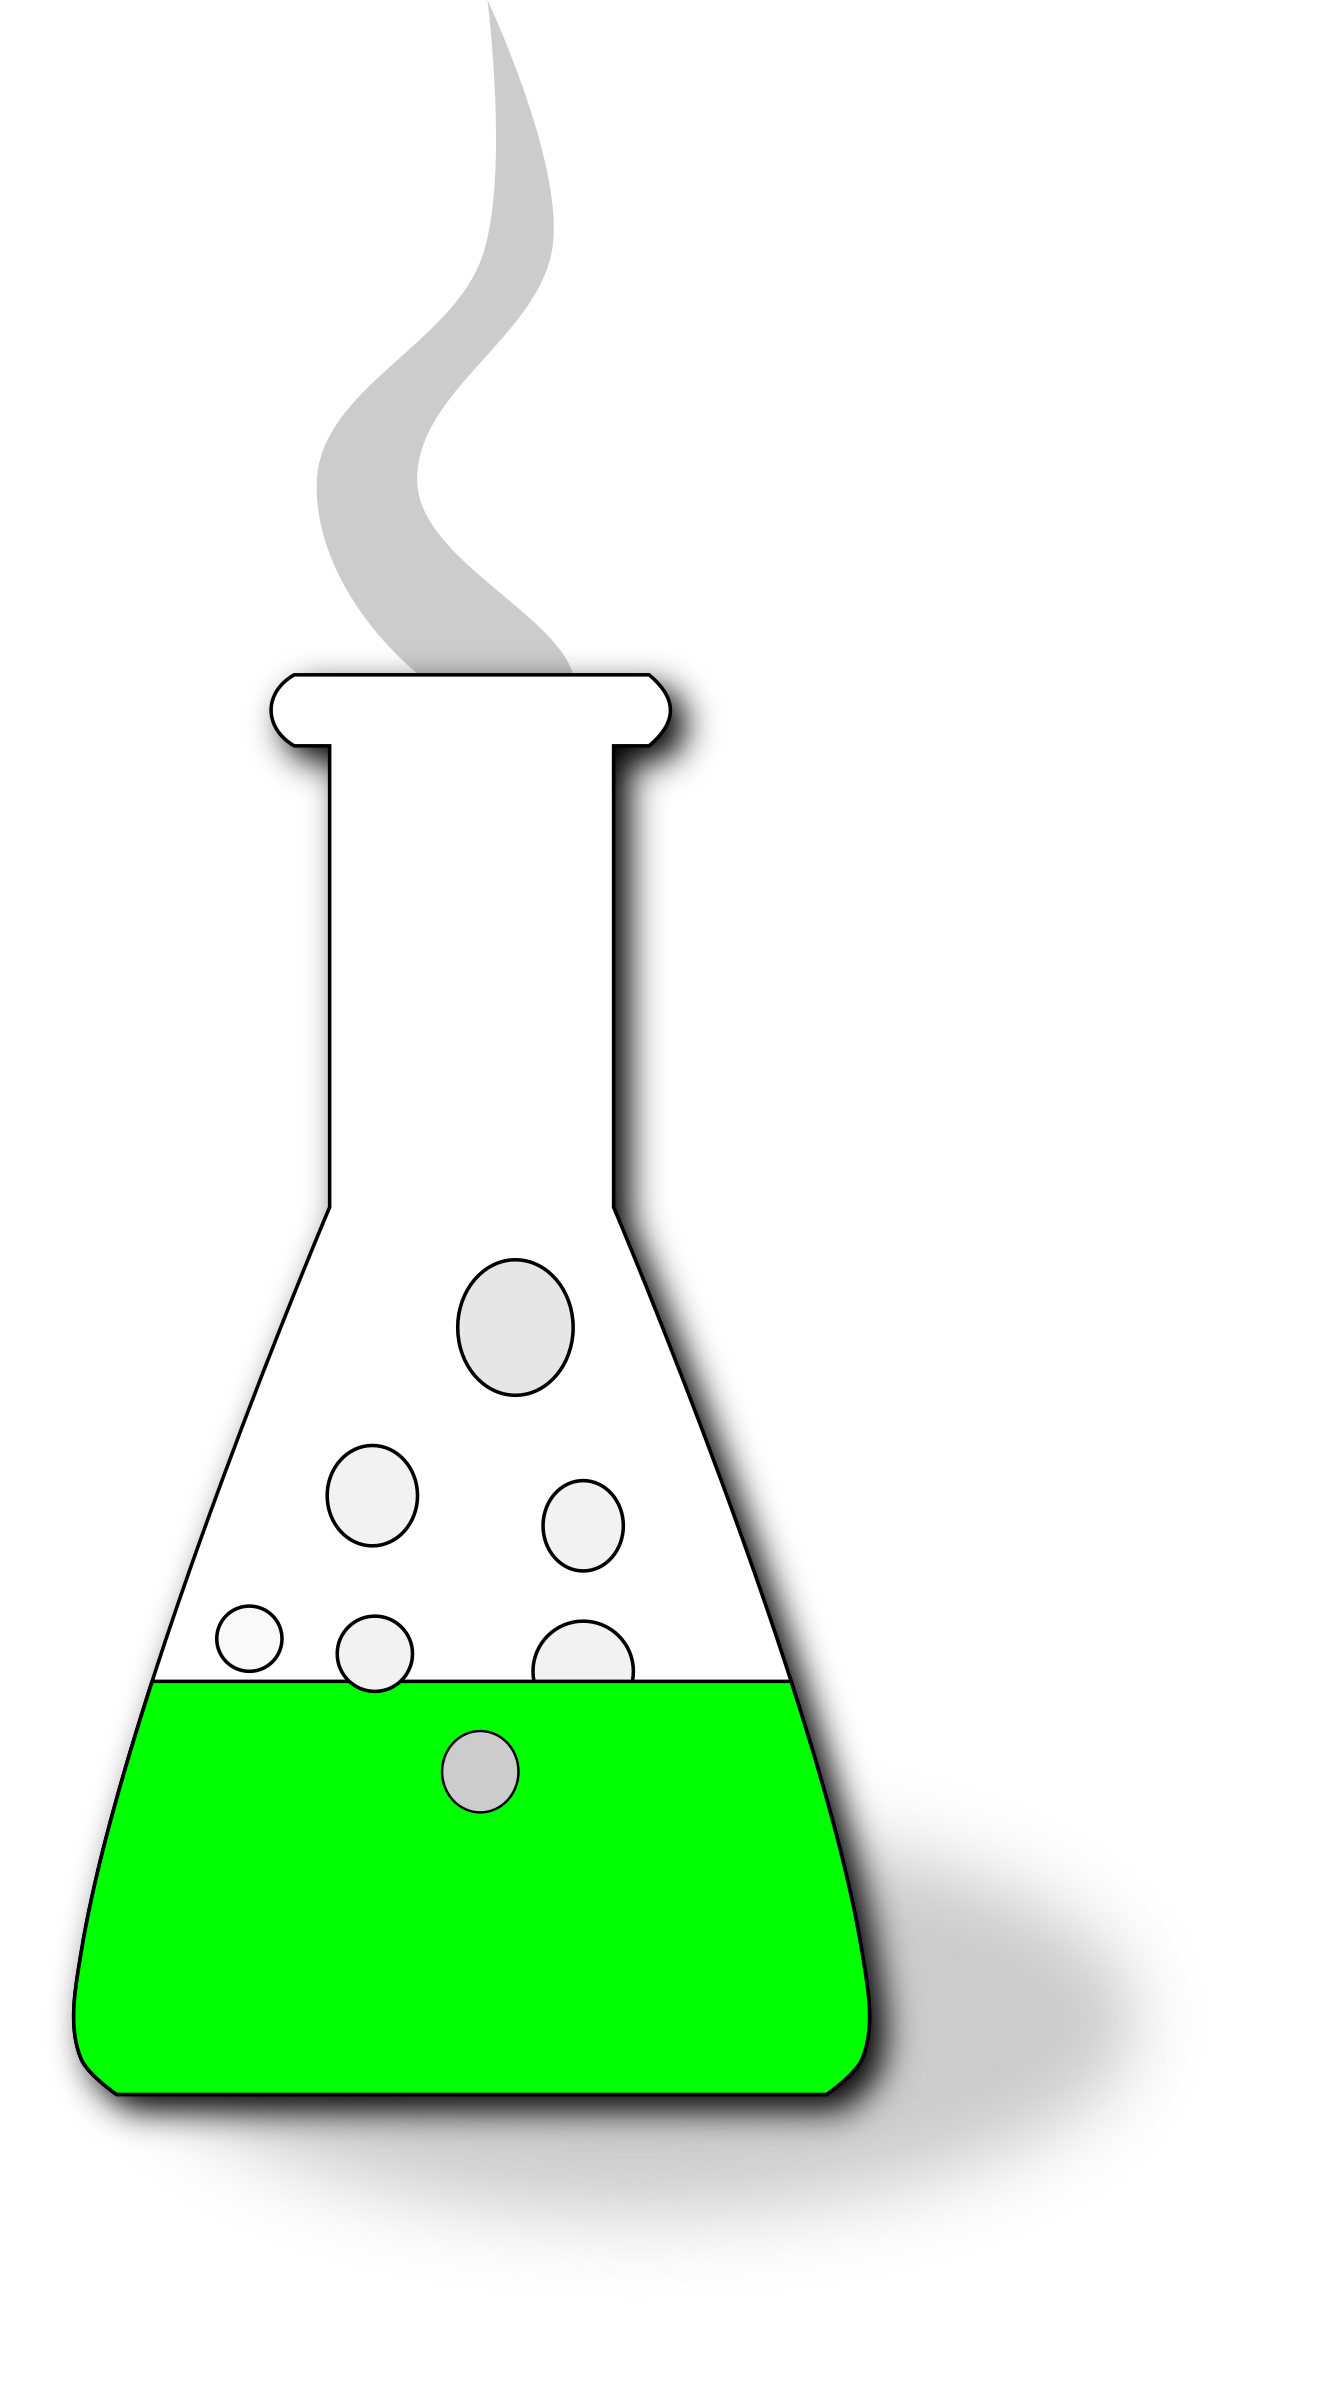 Potion big image png. Clipart definition meaning